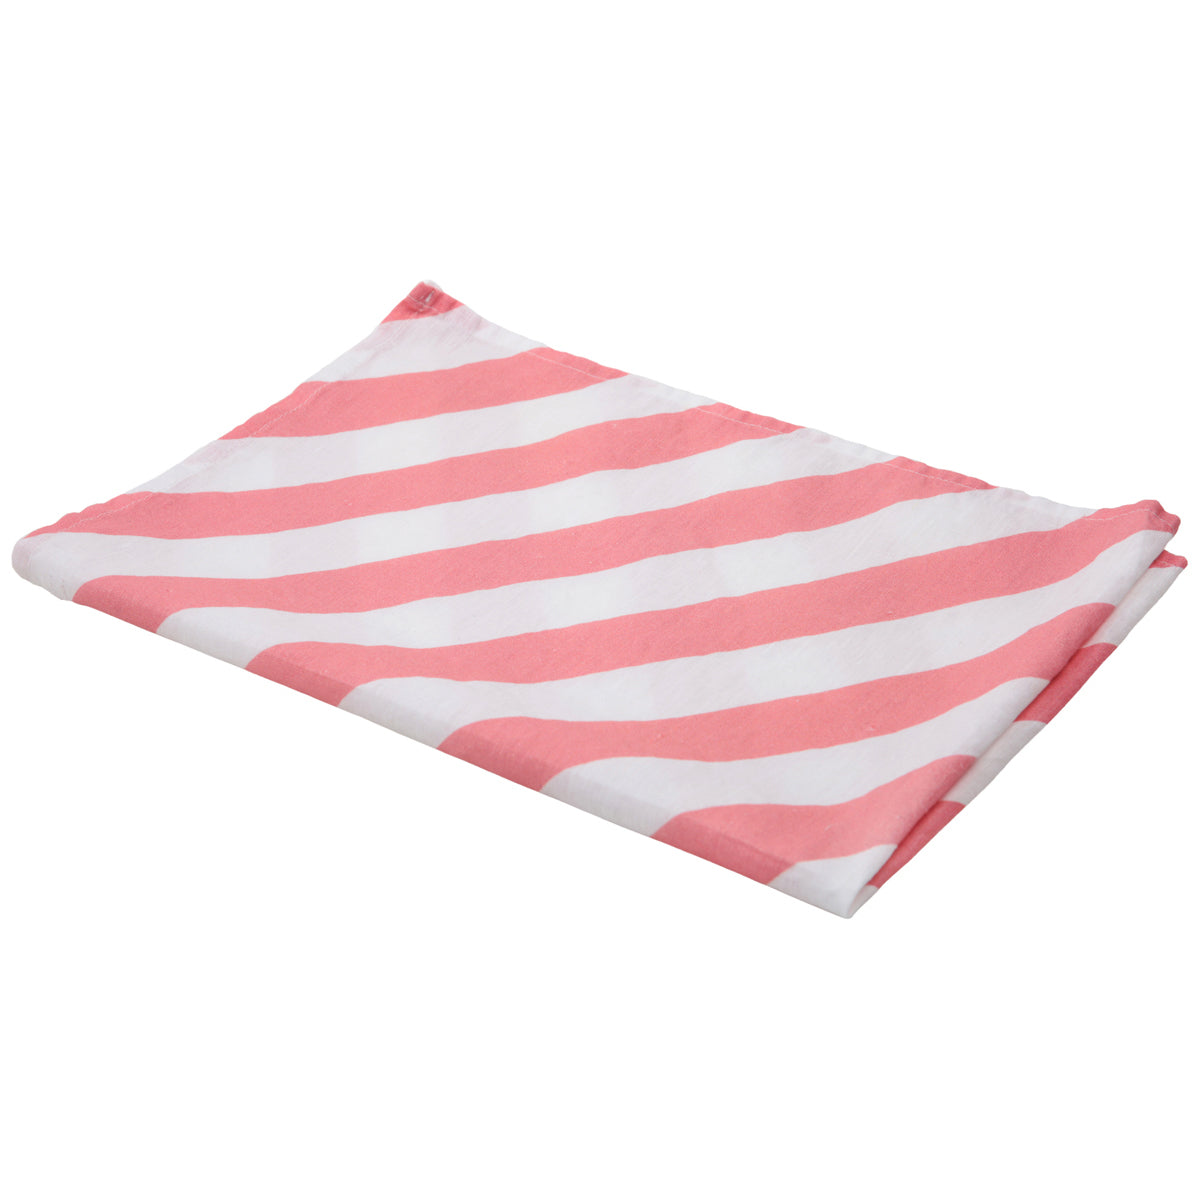 Riemuraita kitchen towel